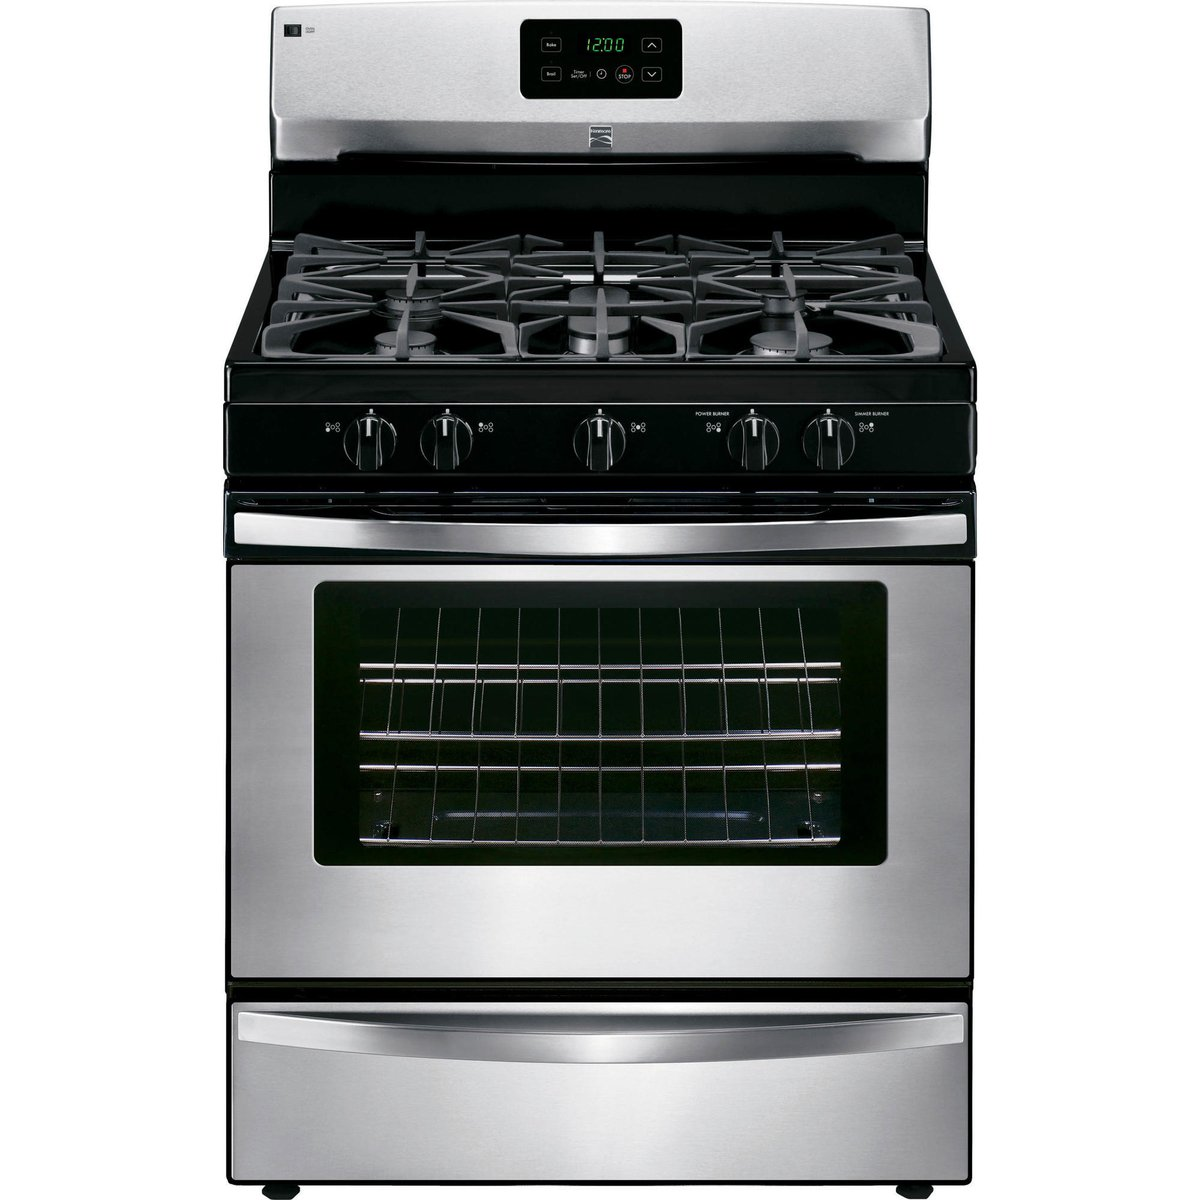 Kenmore 73433 4.2 cu. ft. Freestanding Gas Range in Stainless Steel, includes delivery and hookup (Available in select cities only) by Kenmore